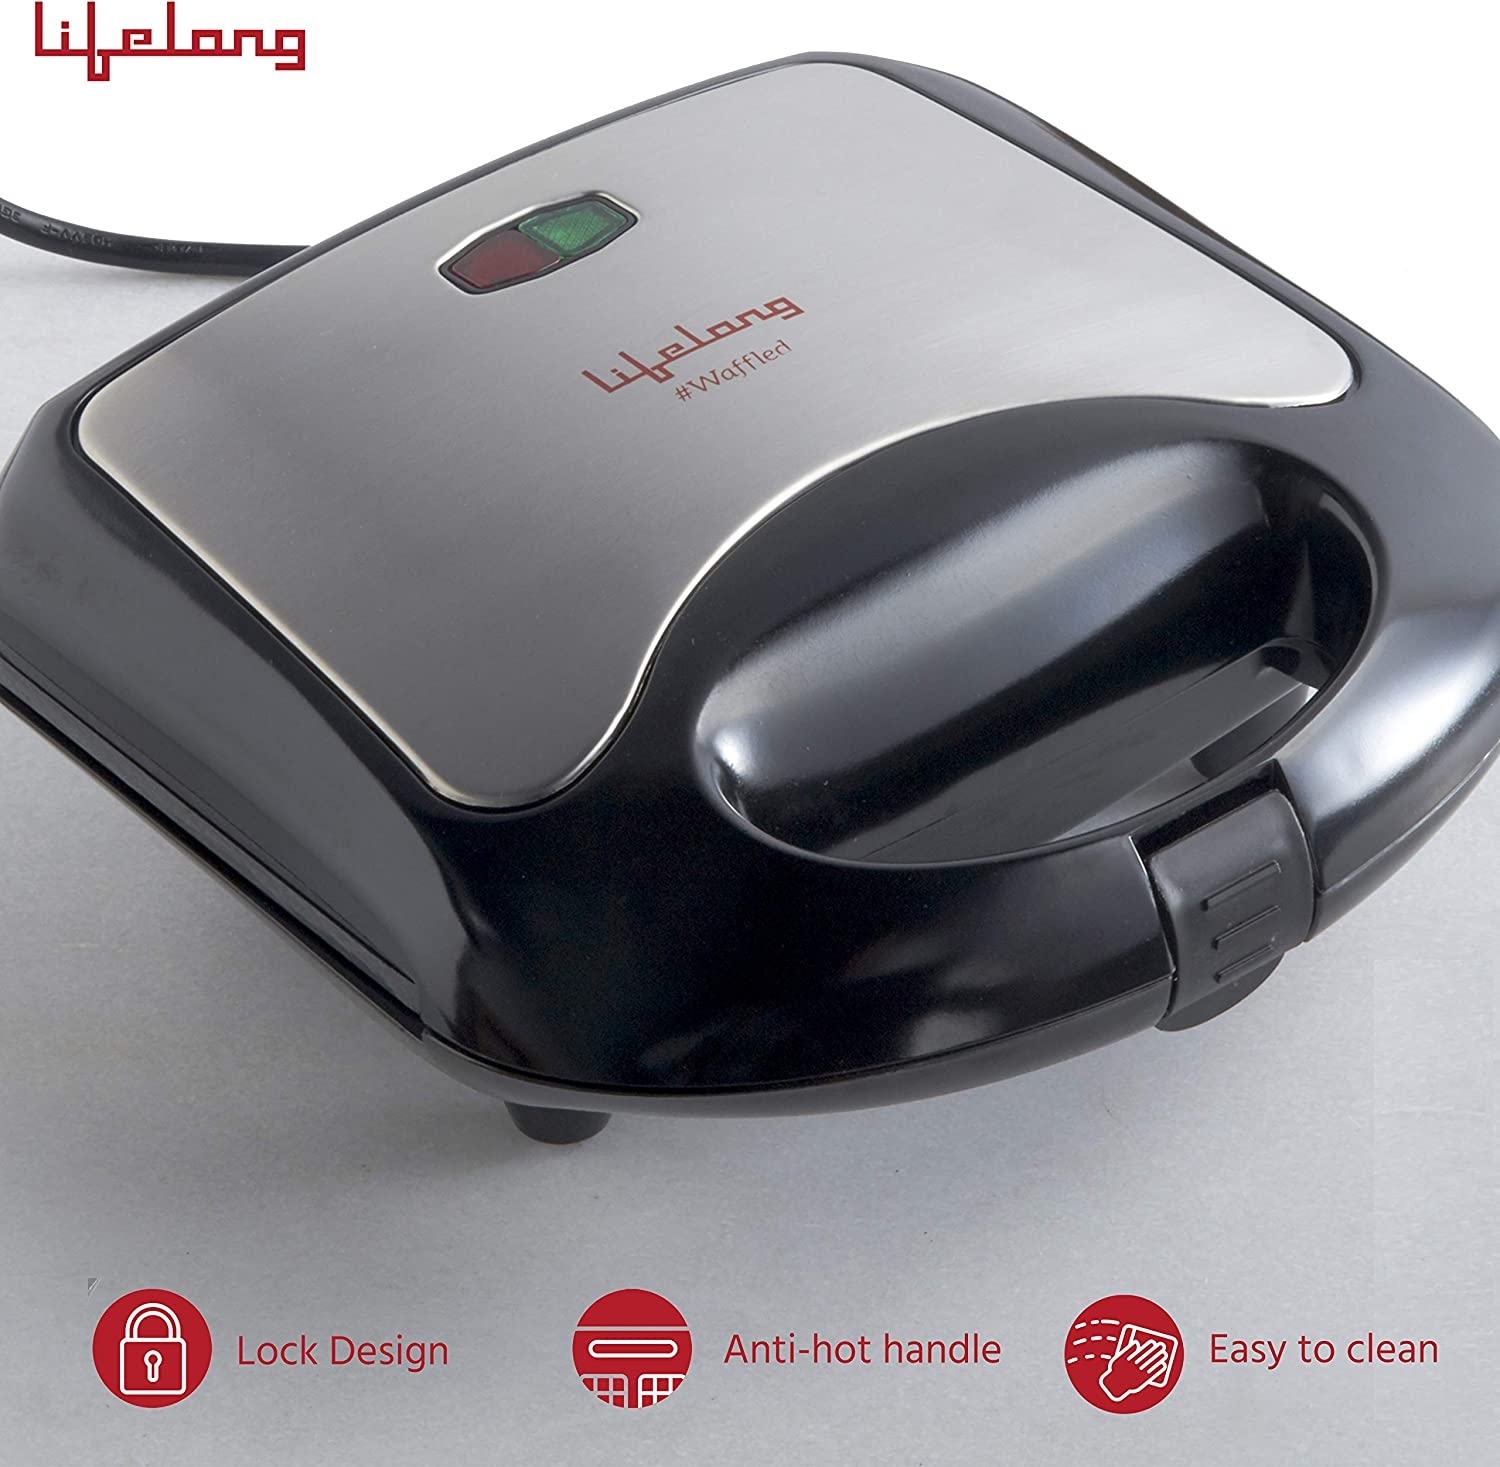 Waffle maker cheapest in India